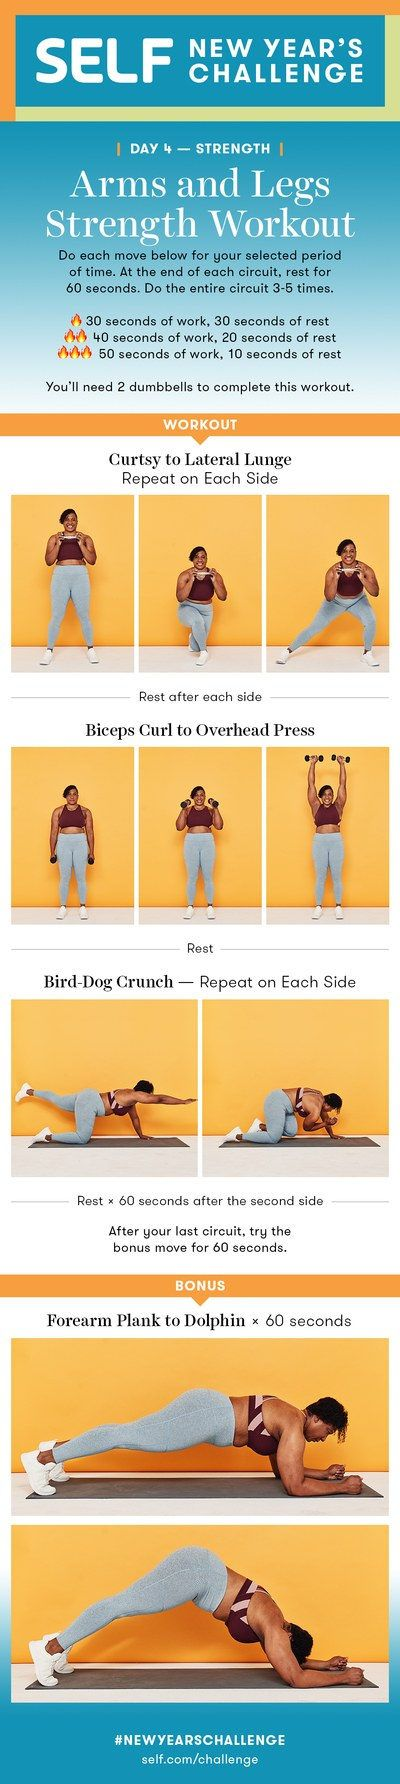 20-Minute Arm and Leg Strength Workout With Dumbbells